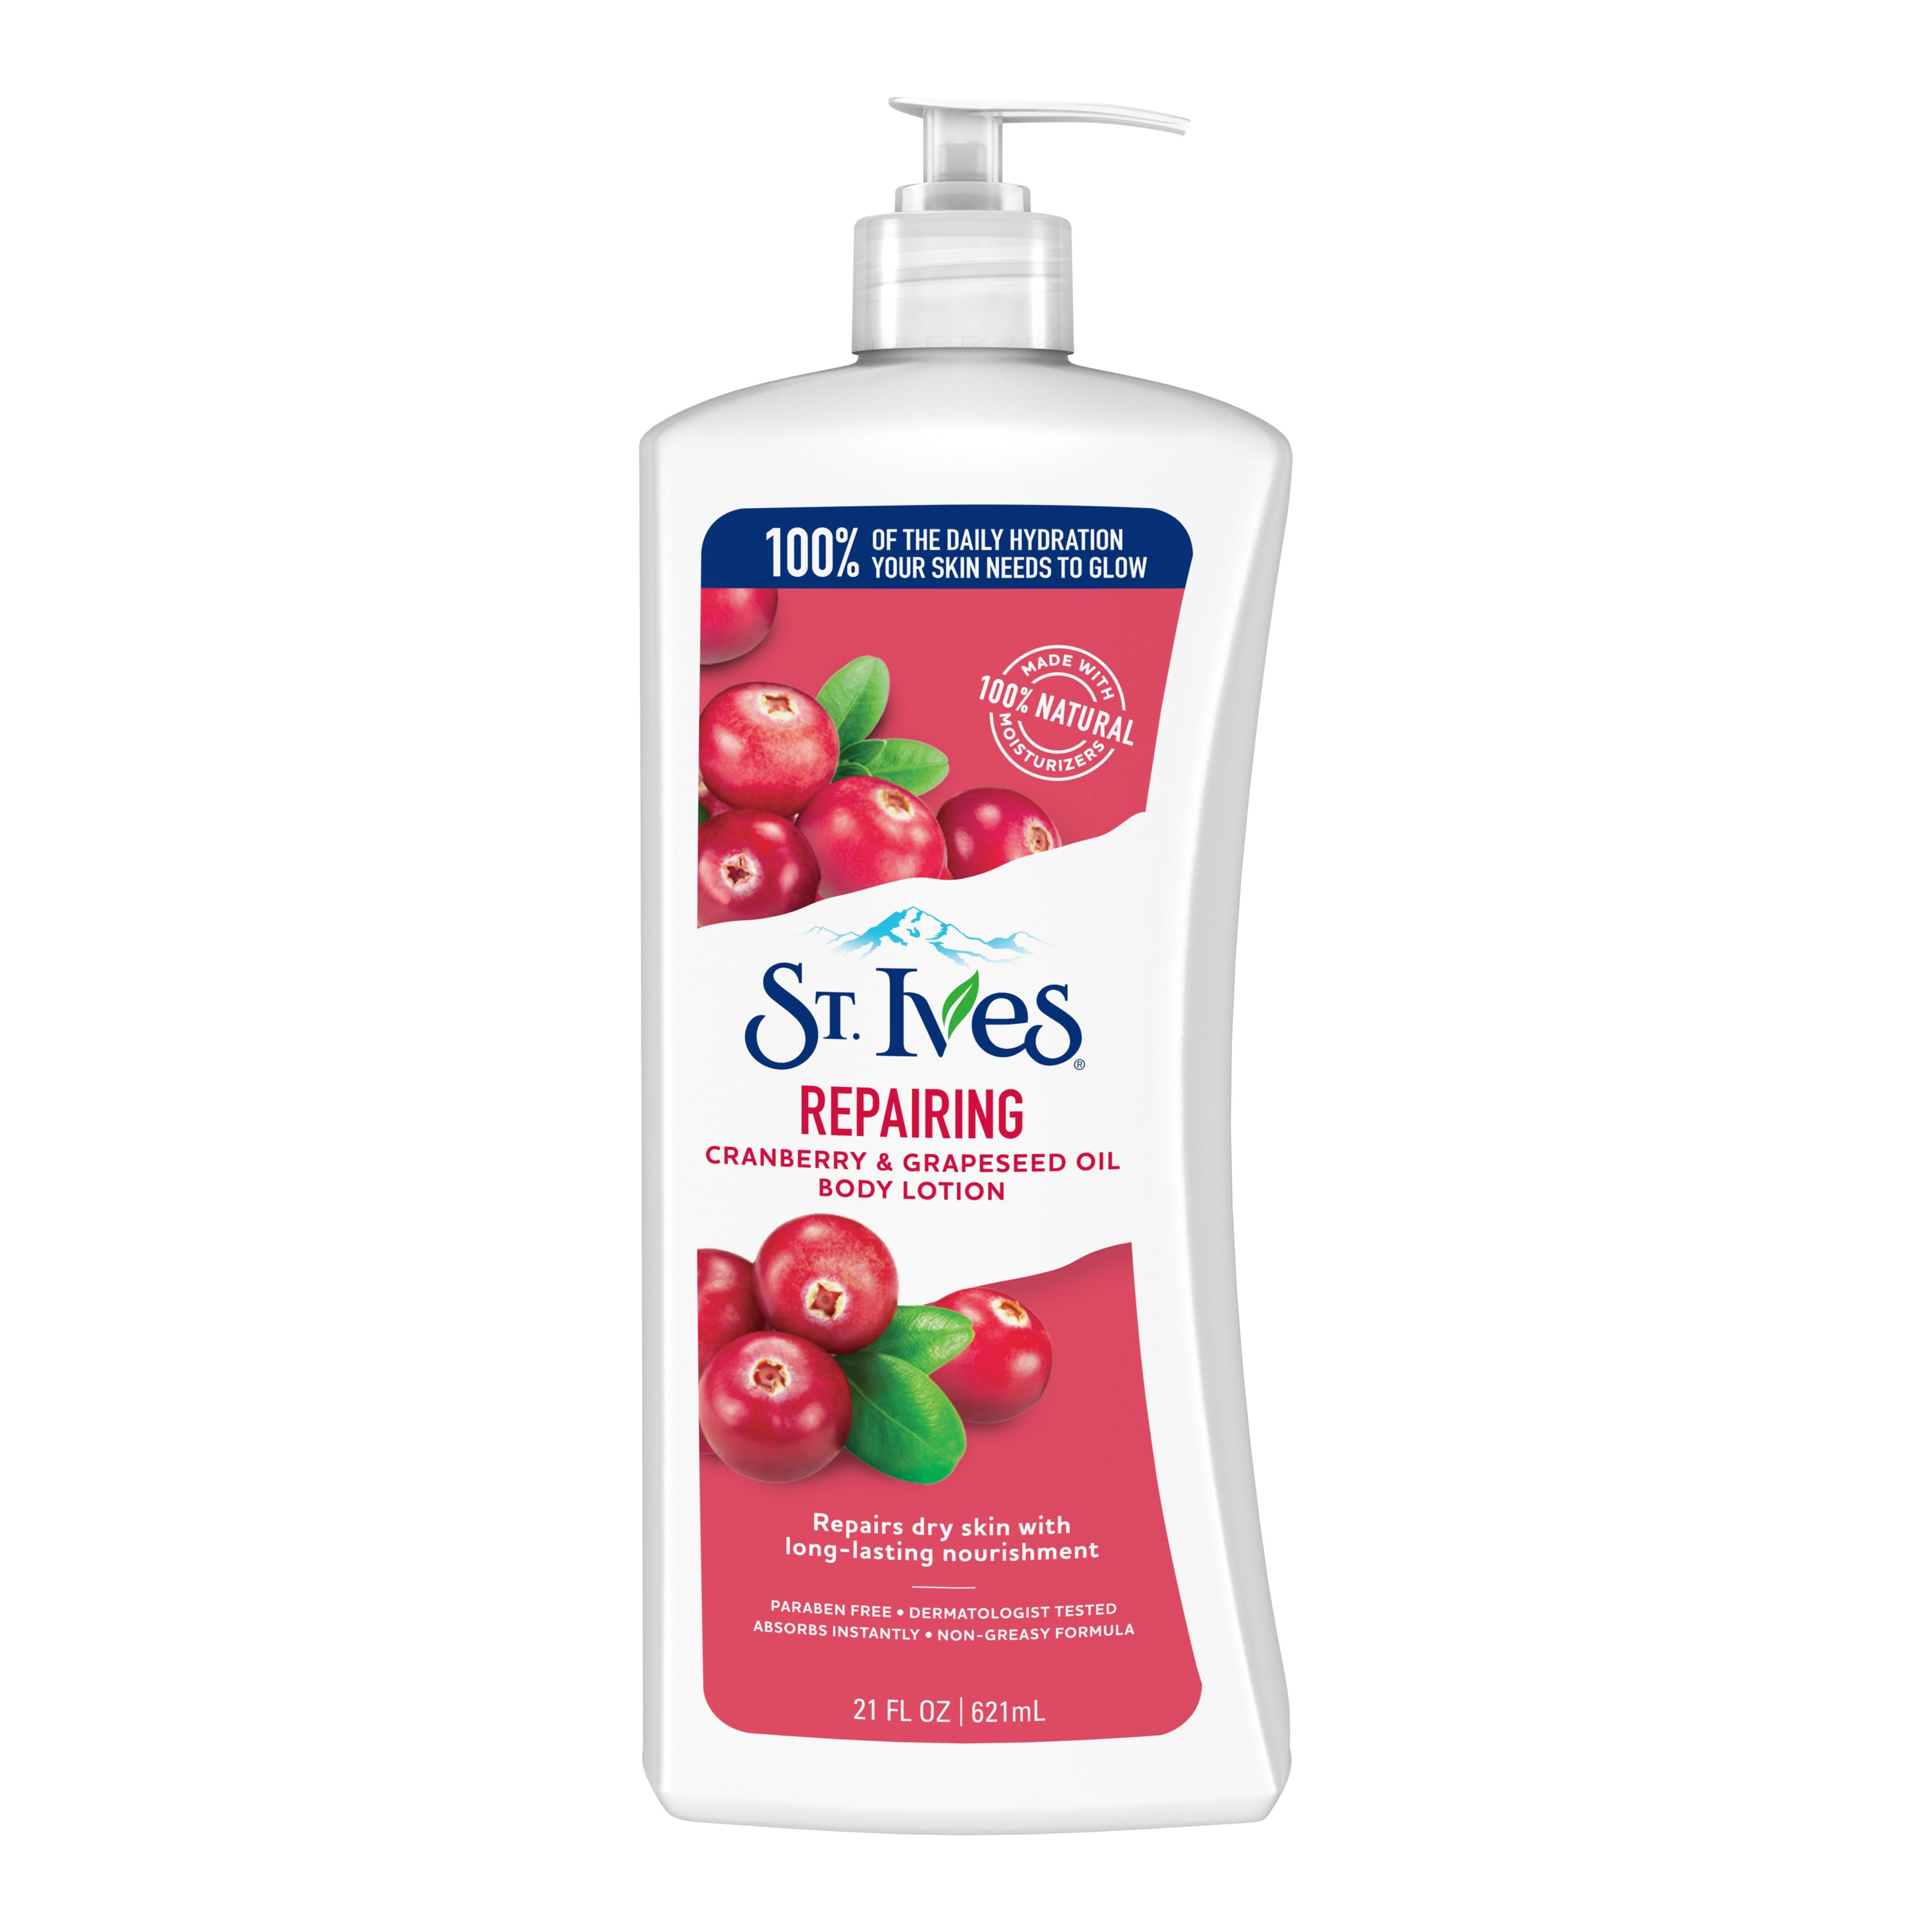 St. Ives Repairing Body Lotion Cranberry and Grapeseed Oil 21 oz